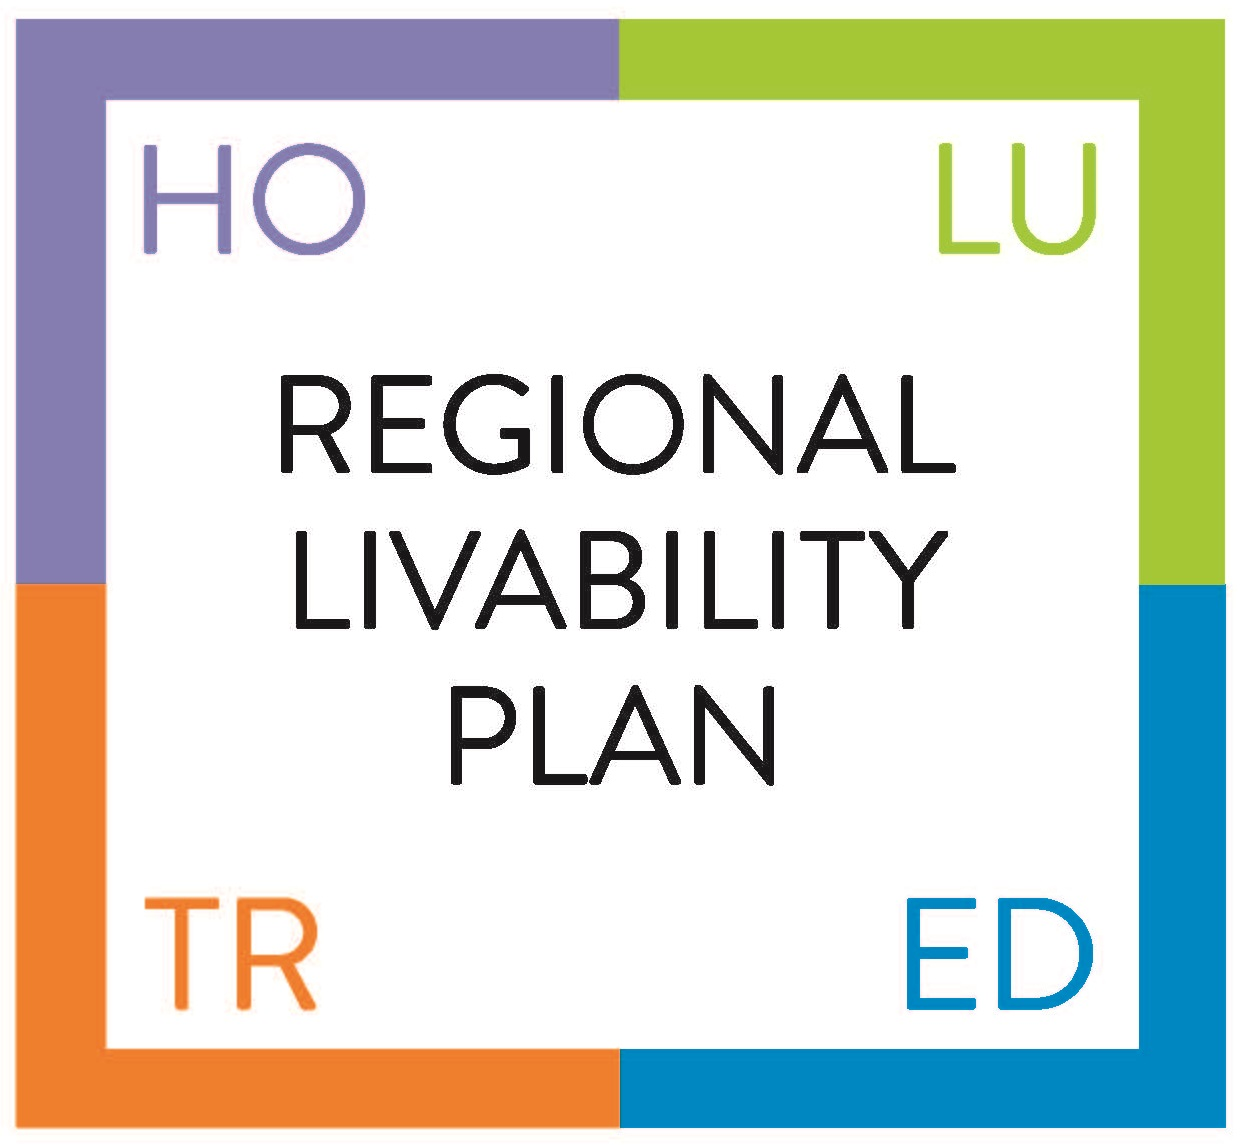 Regional Livibility Planning